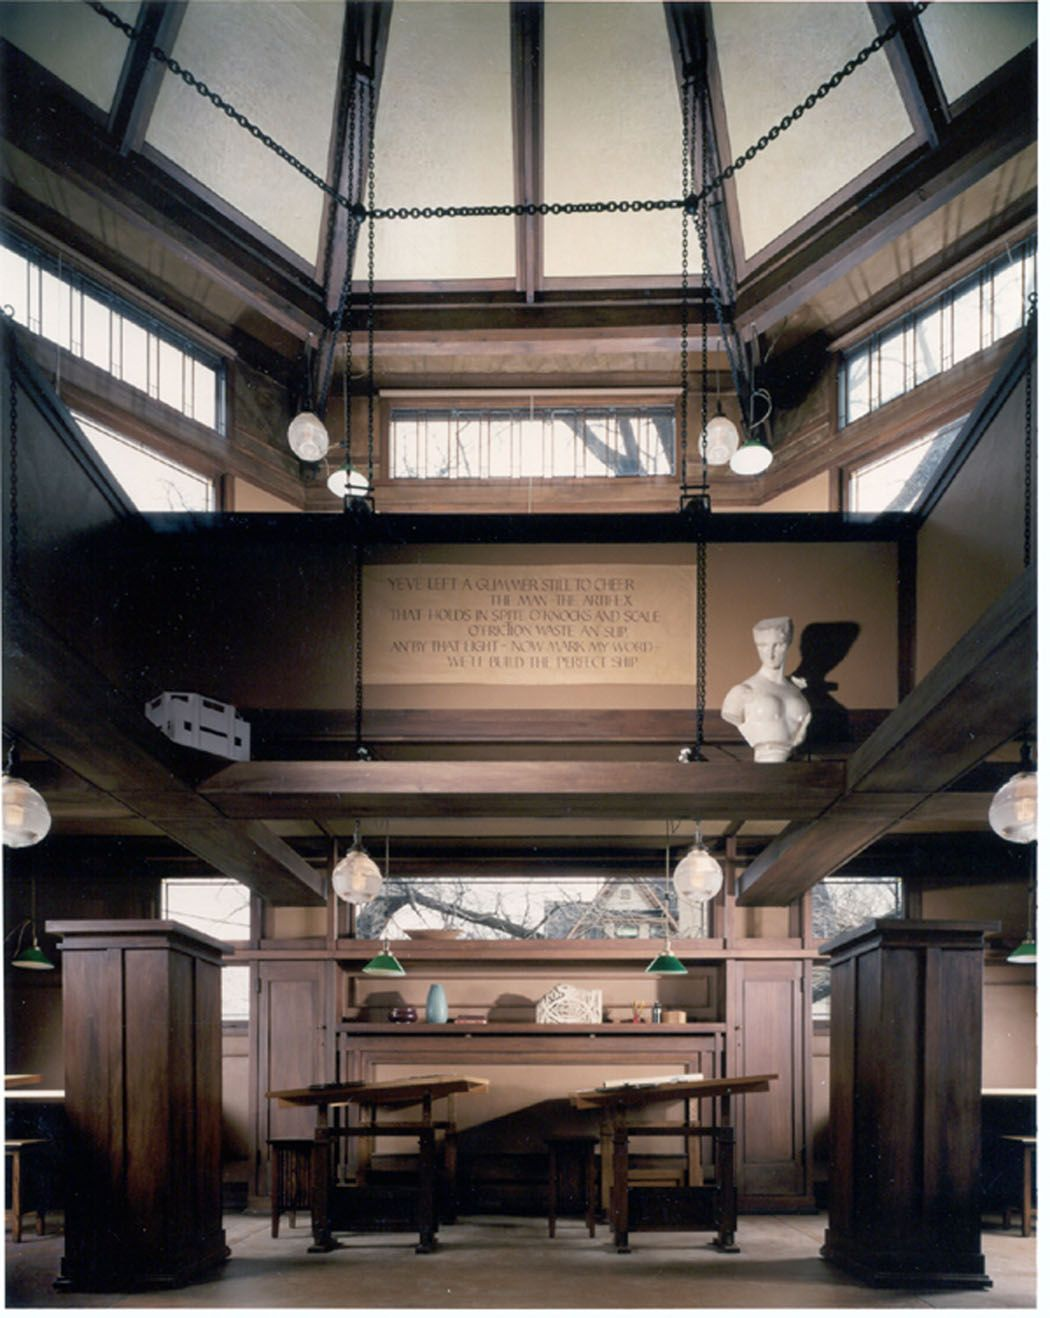 Prairieschoolarchitecture 50 Essential Frank Lloyd Wright Buildings Home And Studio Oak Park Illinois 1889